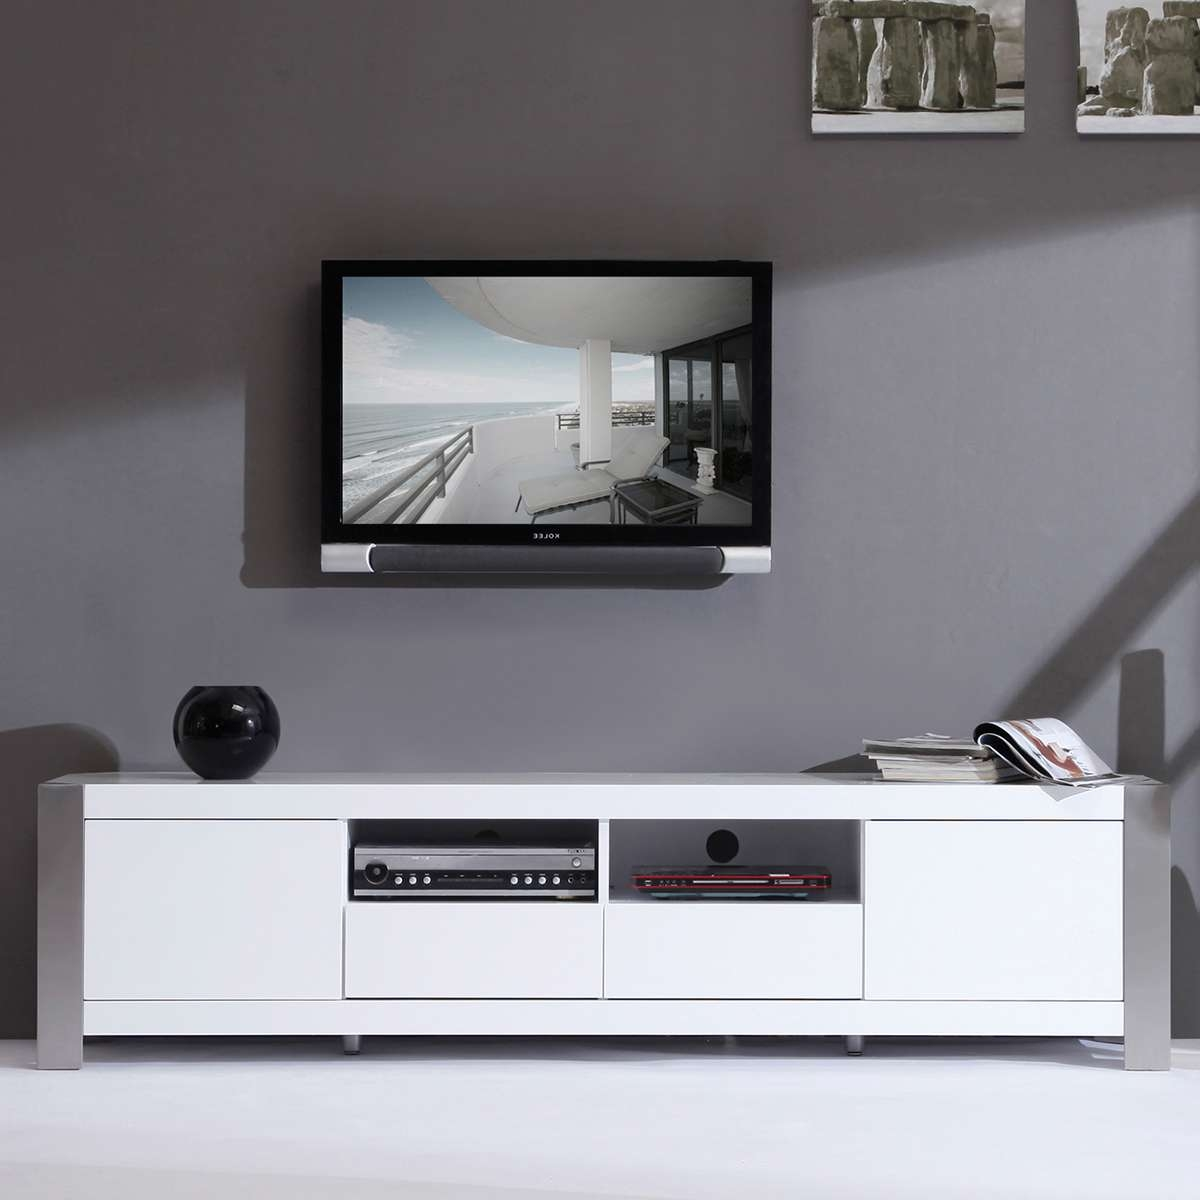 Tv : Roma Black Swivel High Gloss Tv Stand Modern Tv Stands With Regard To Large White Tv Stands (View 13 of 15)